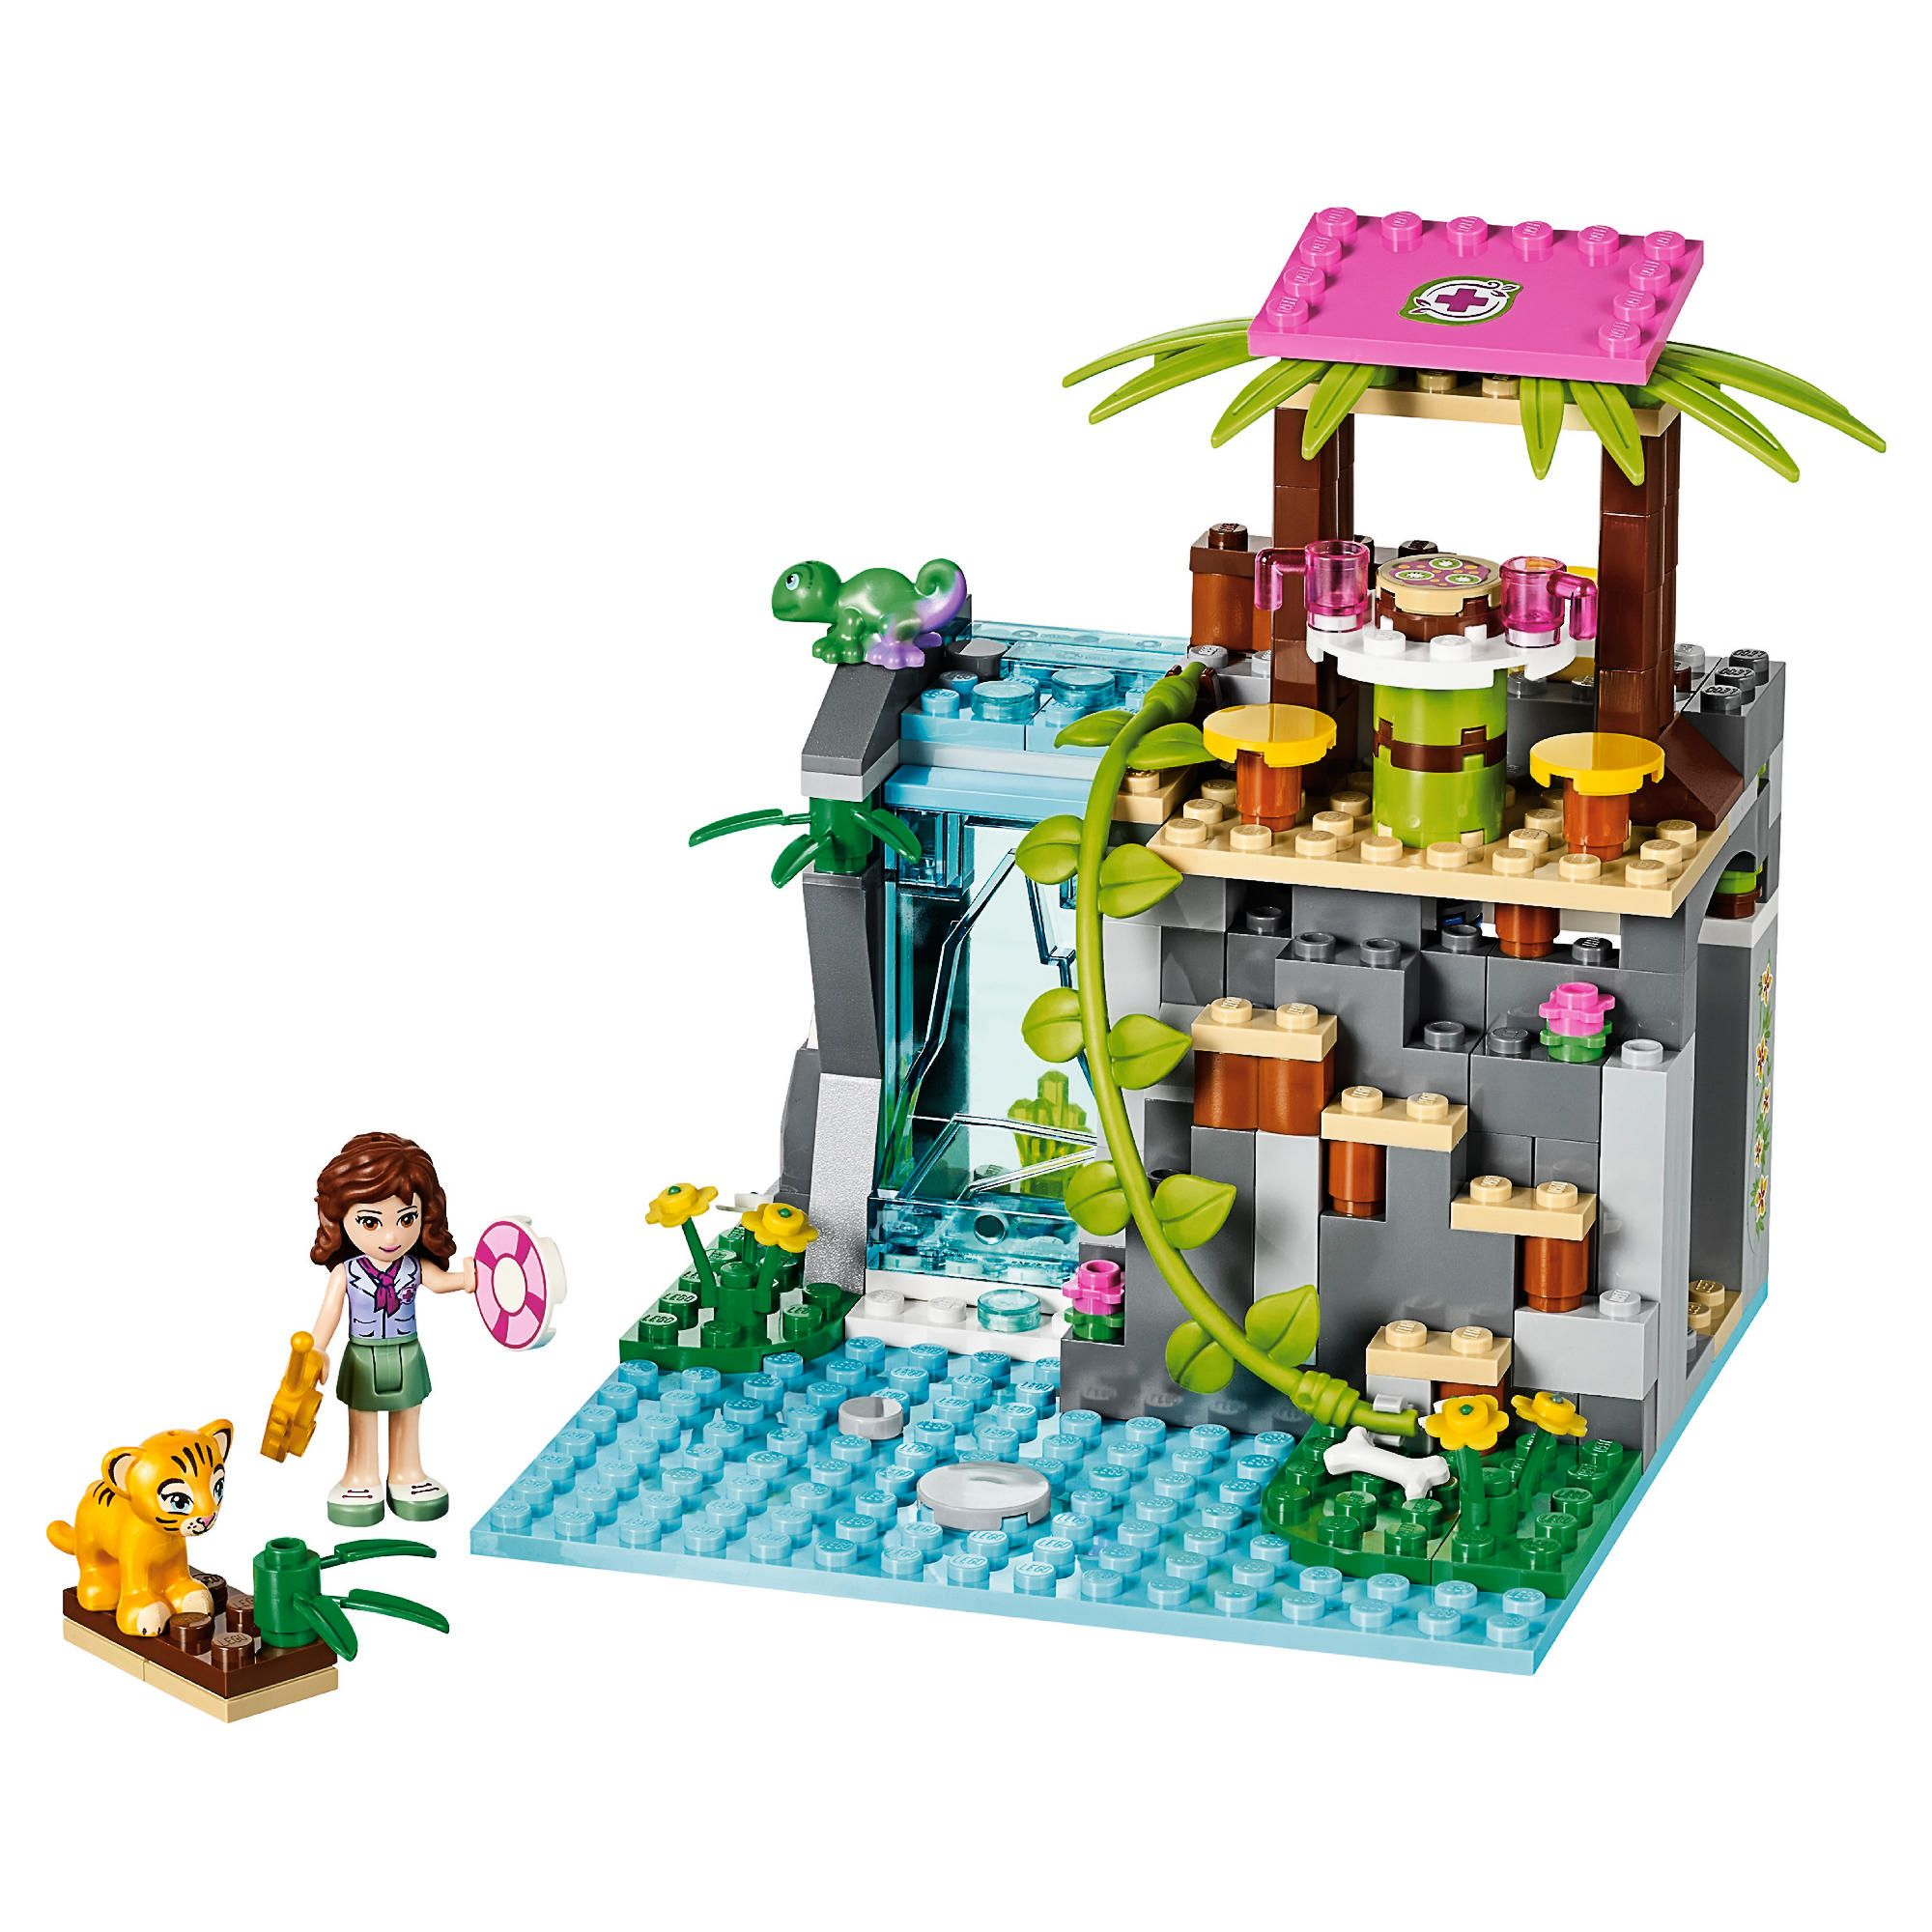 Friendsbricks lego friends sets summer 2014 for Olivia s garden pool instructions